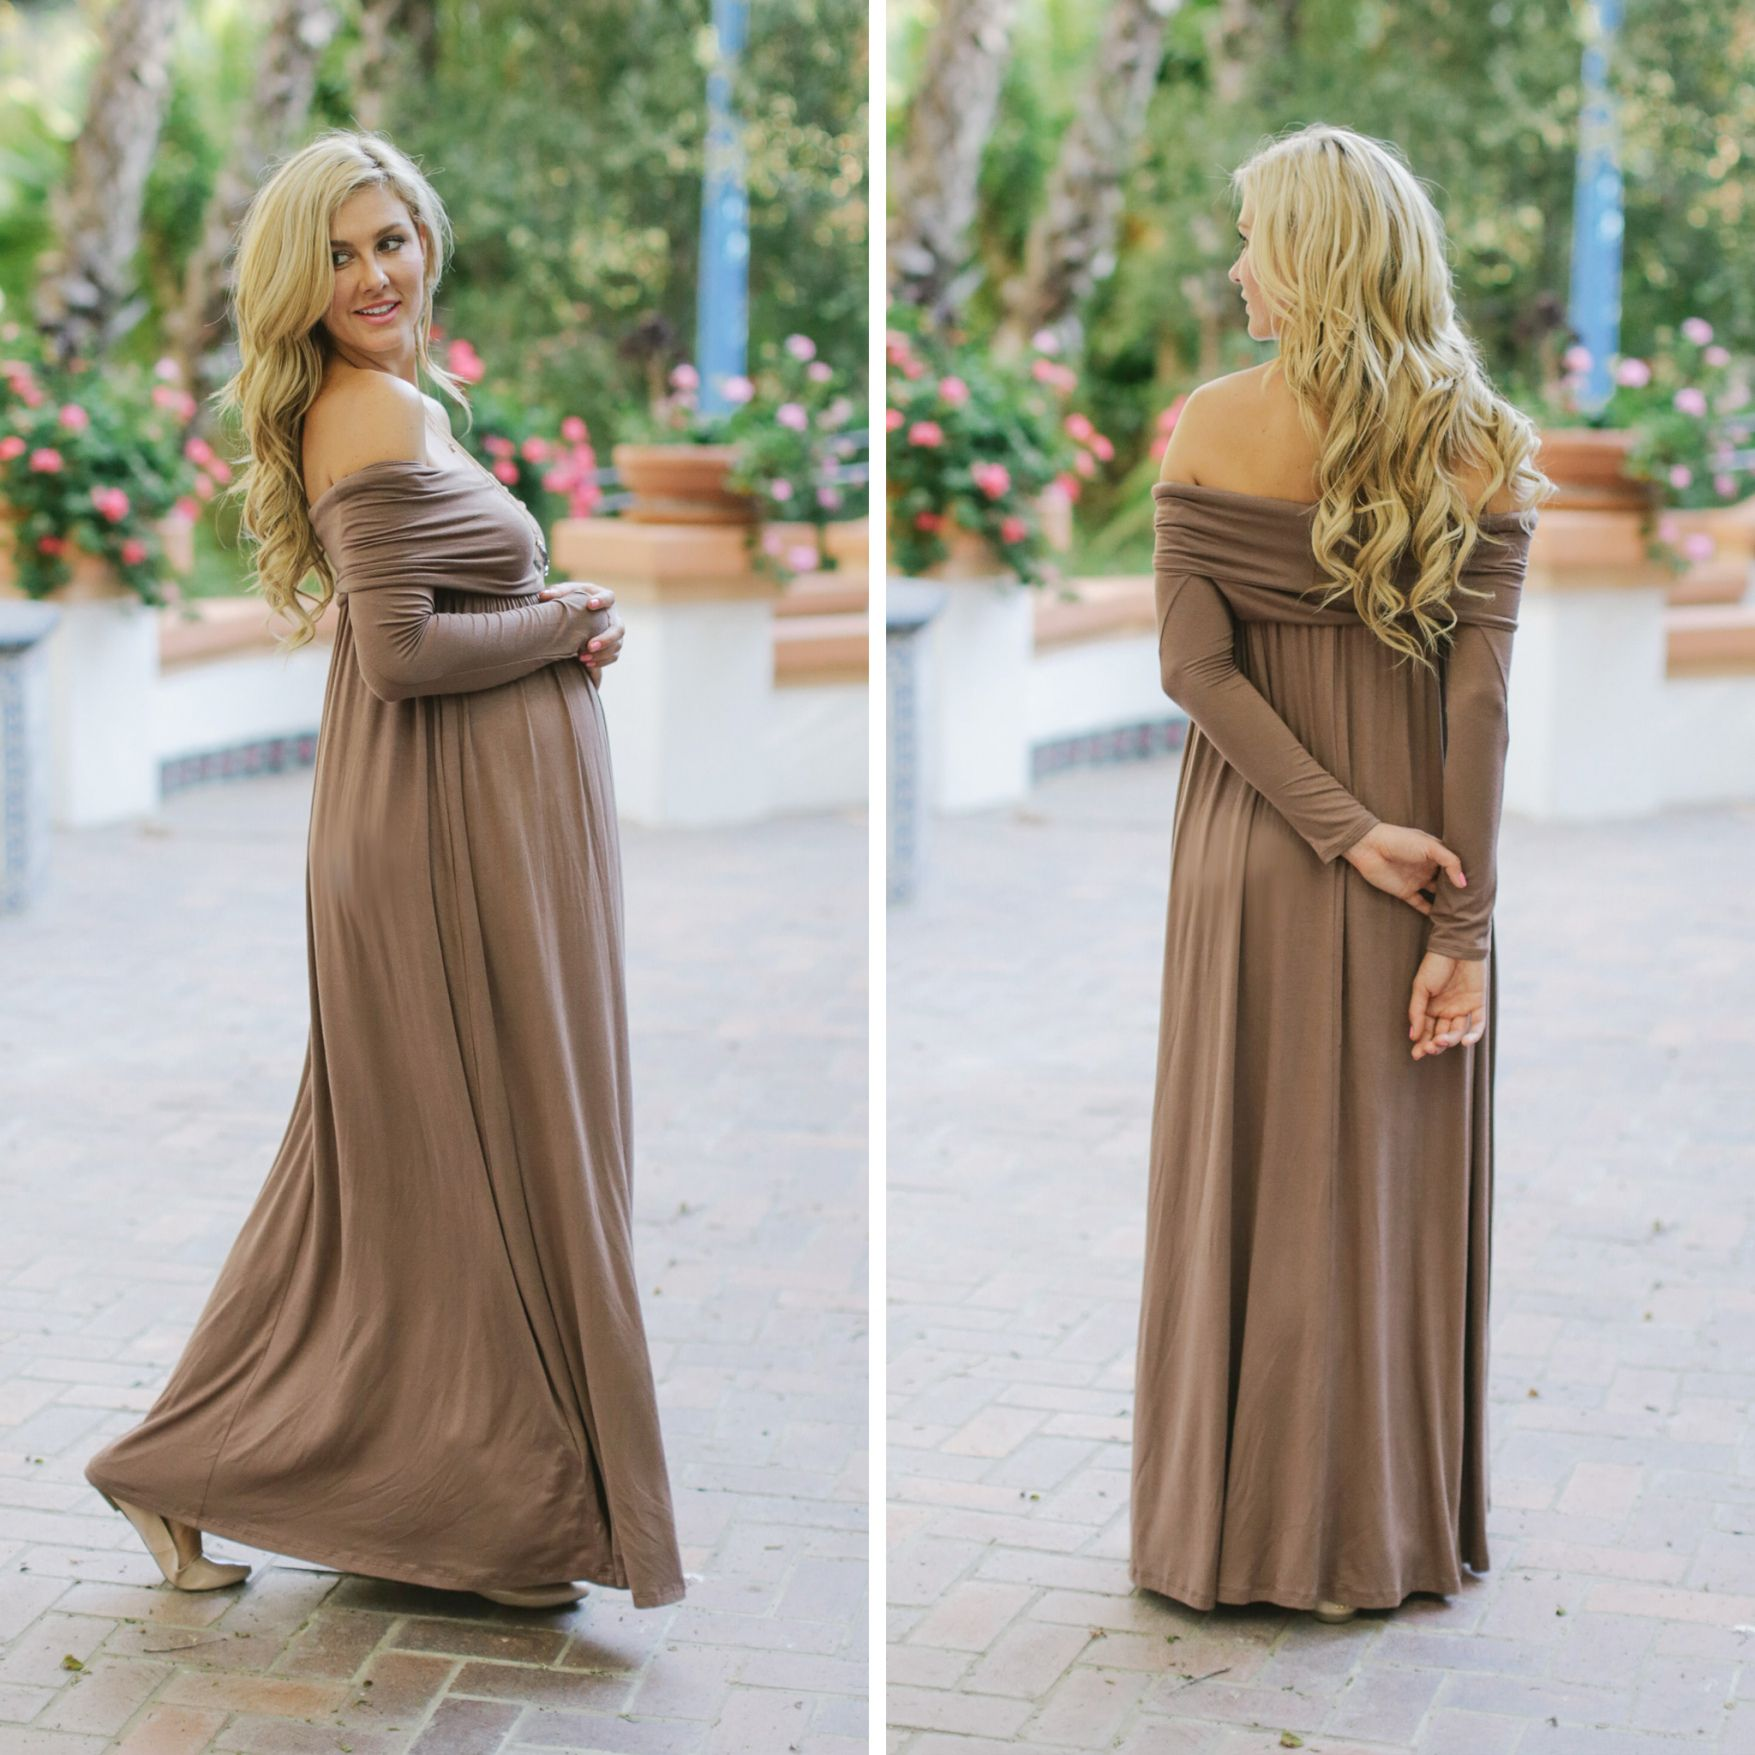 77+ Cute Maternity Dresses for Weddings - Wedding Dresses for the ...